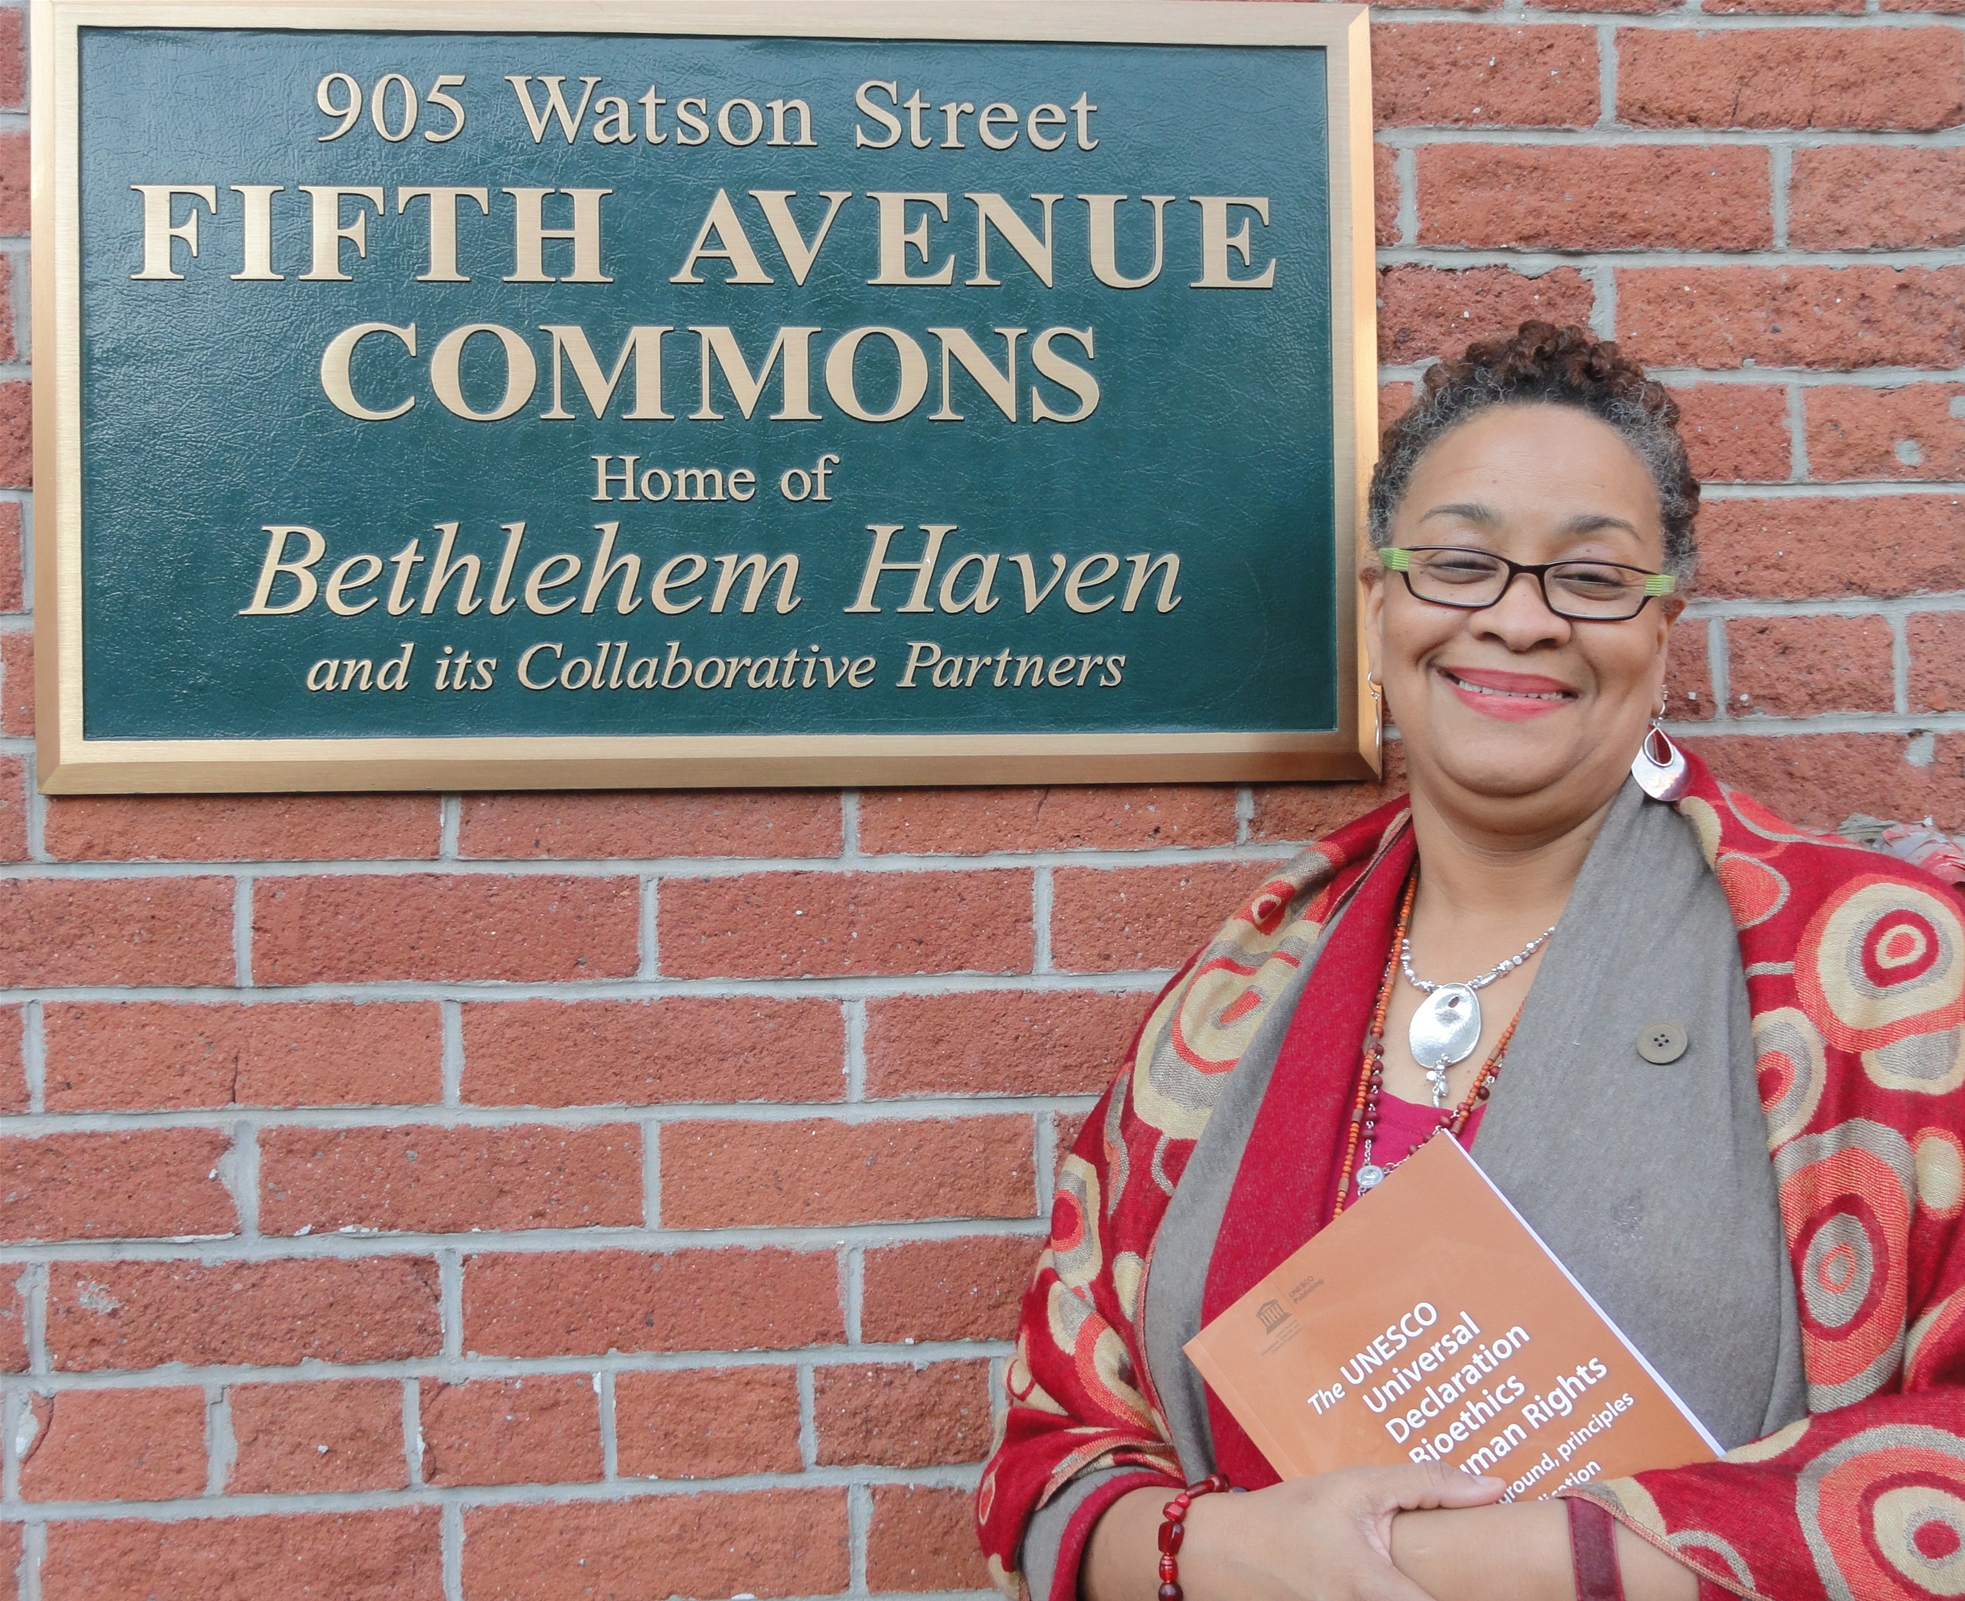 Sharon at the Sign of Bethlehem Haven